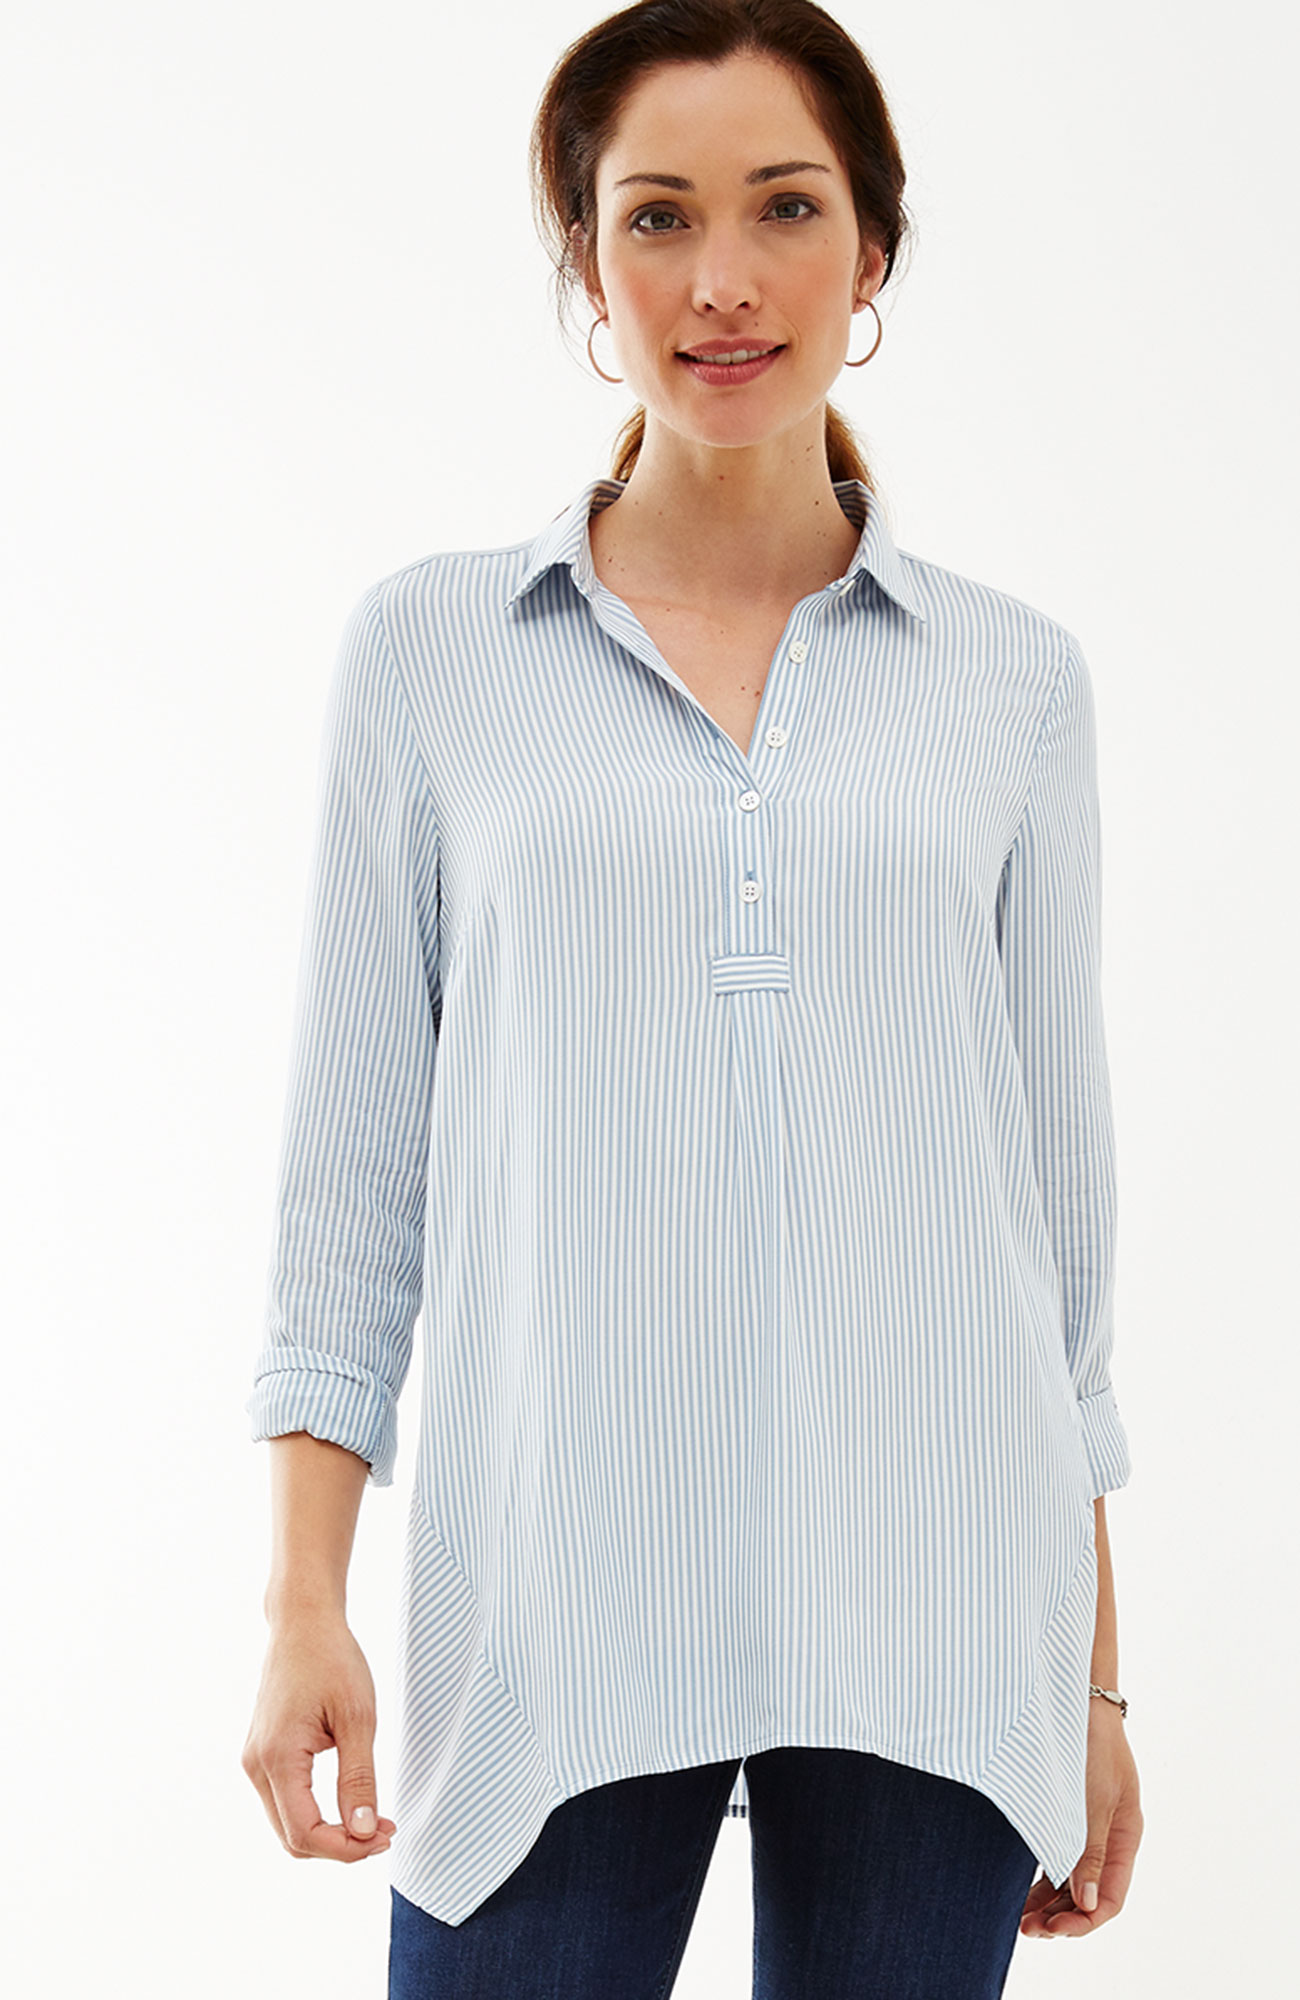 dipped-hem striped top